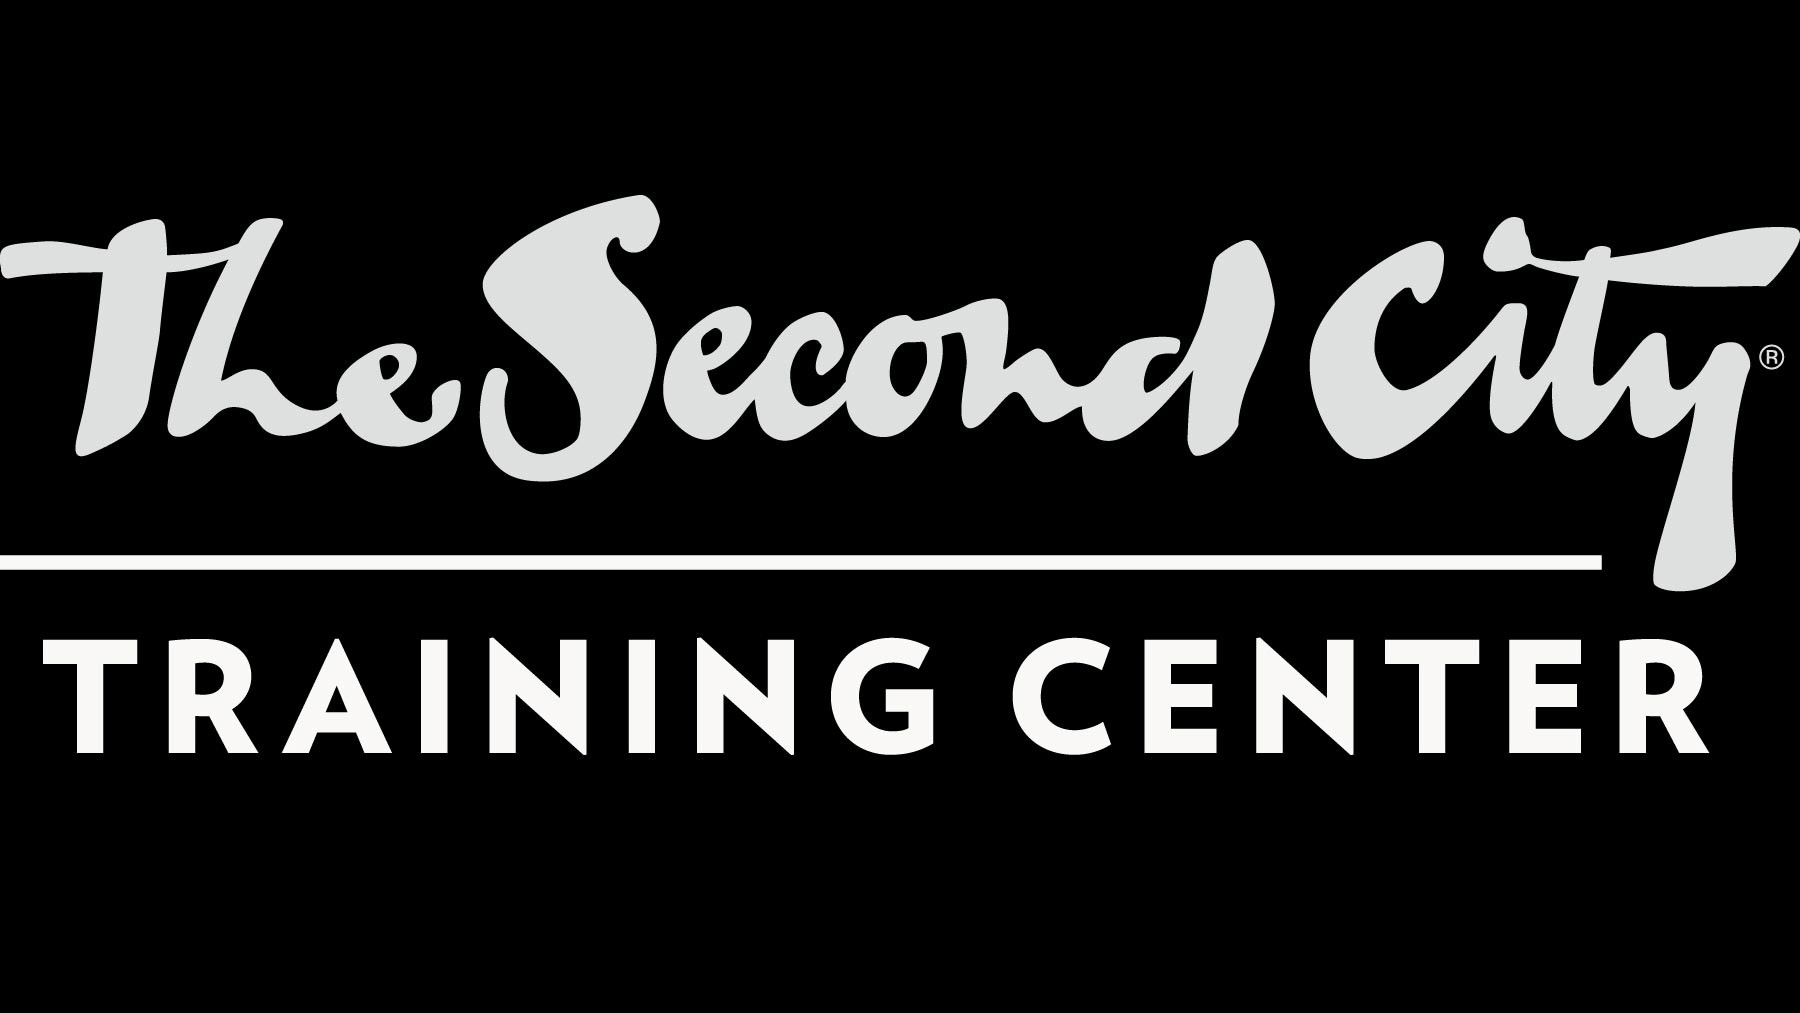 Black Training Center Logo